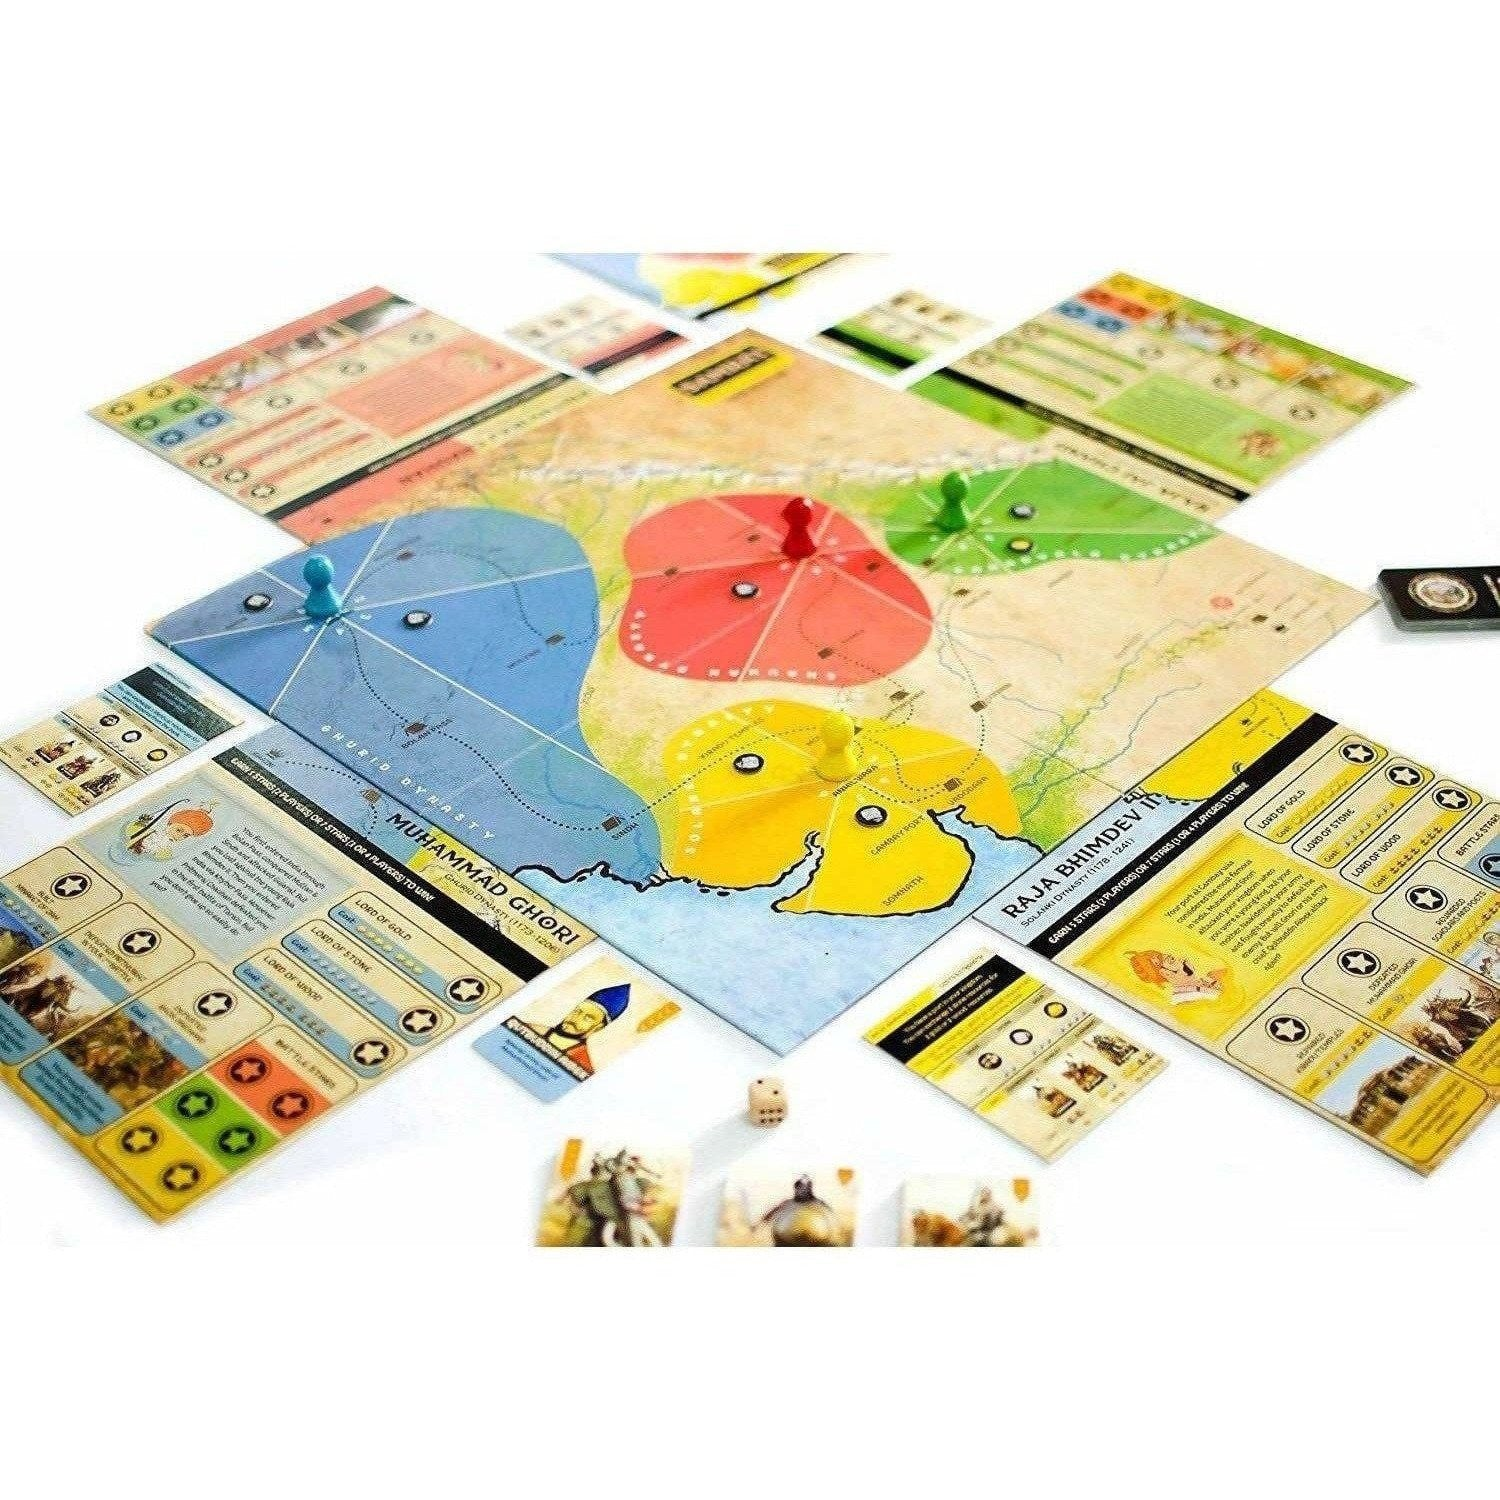 Samrat Strategy Board Game Based on Indian Kings History